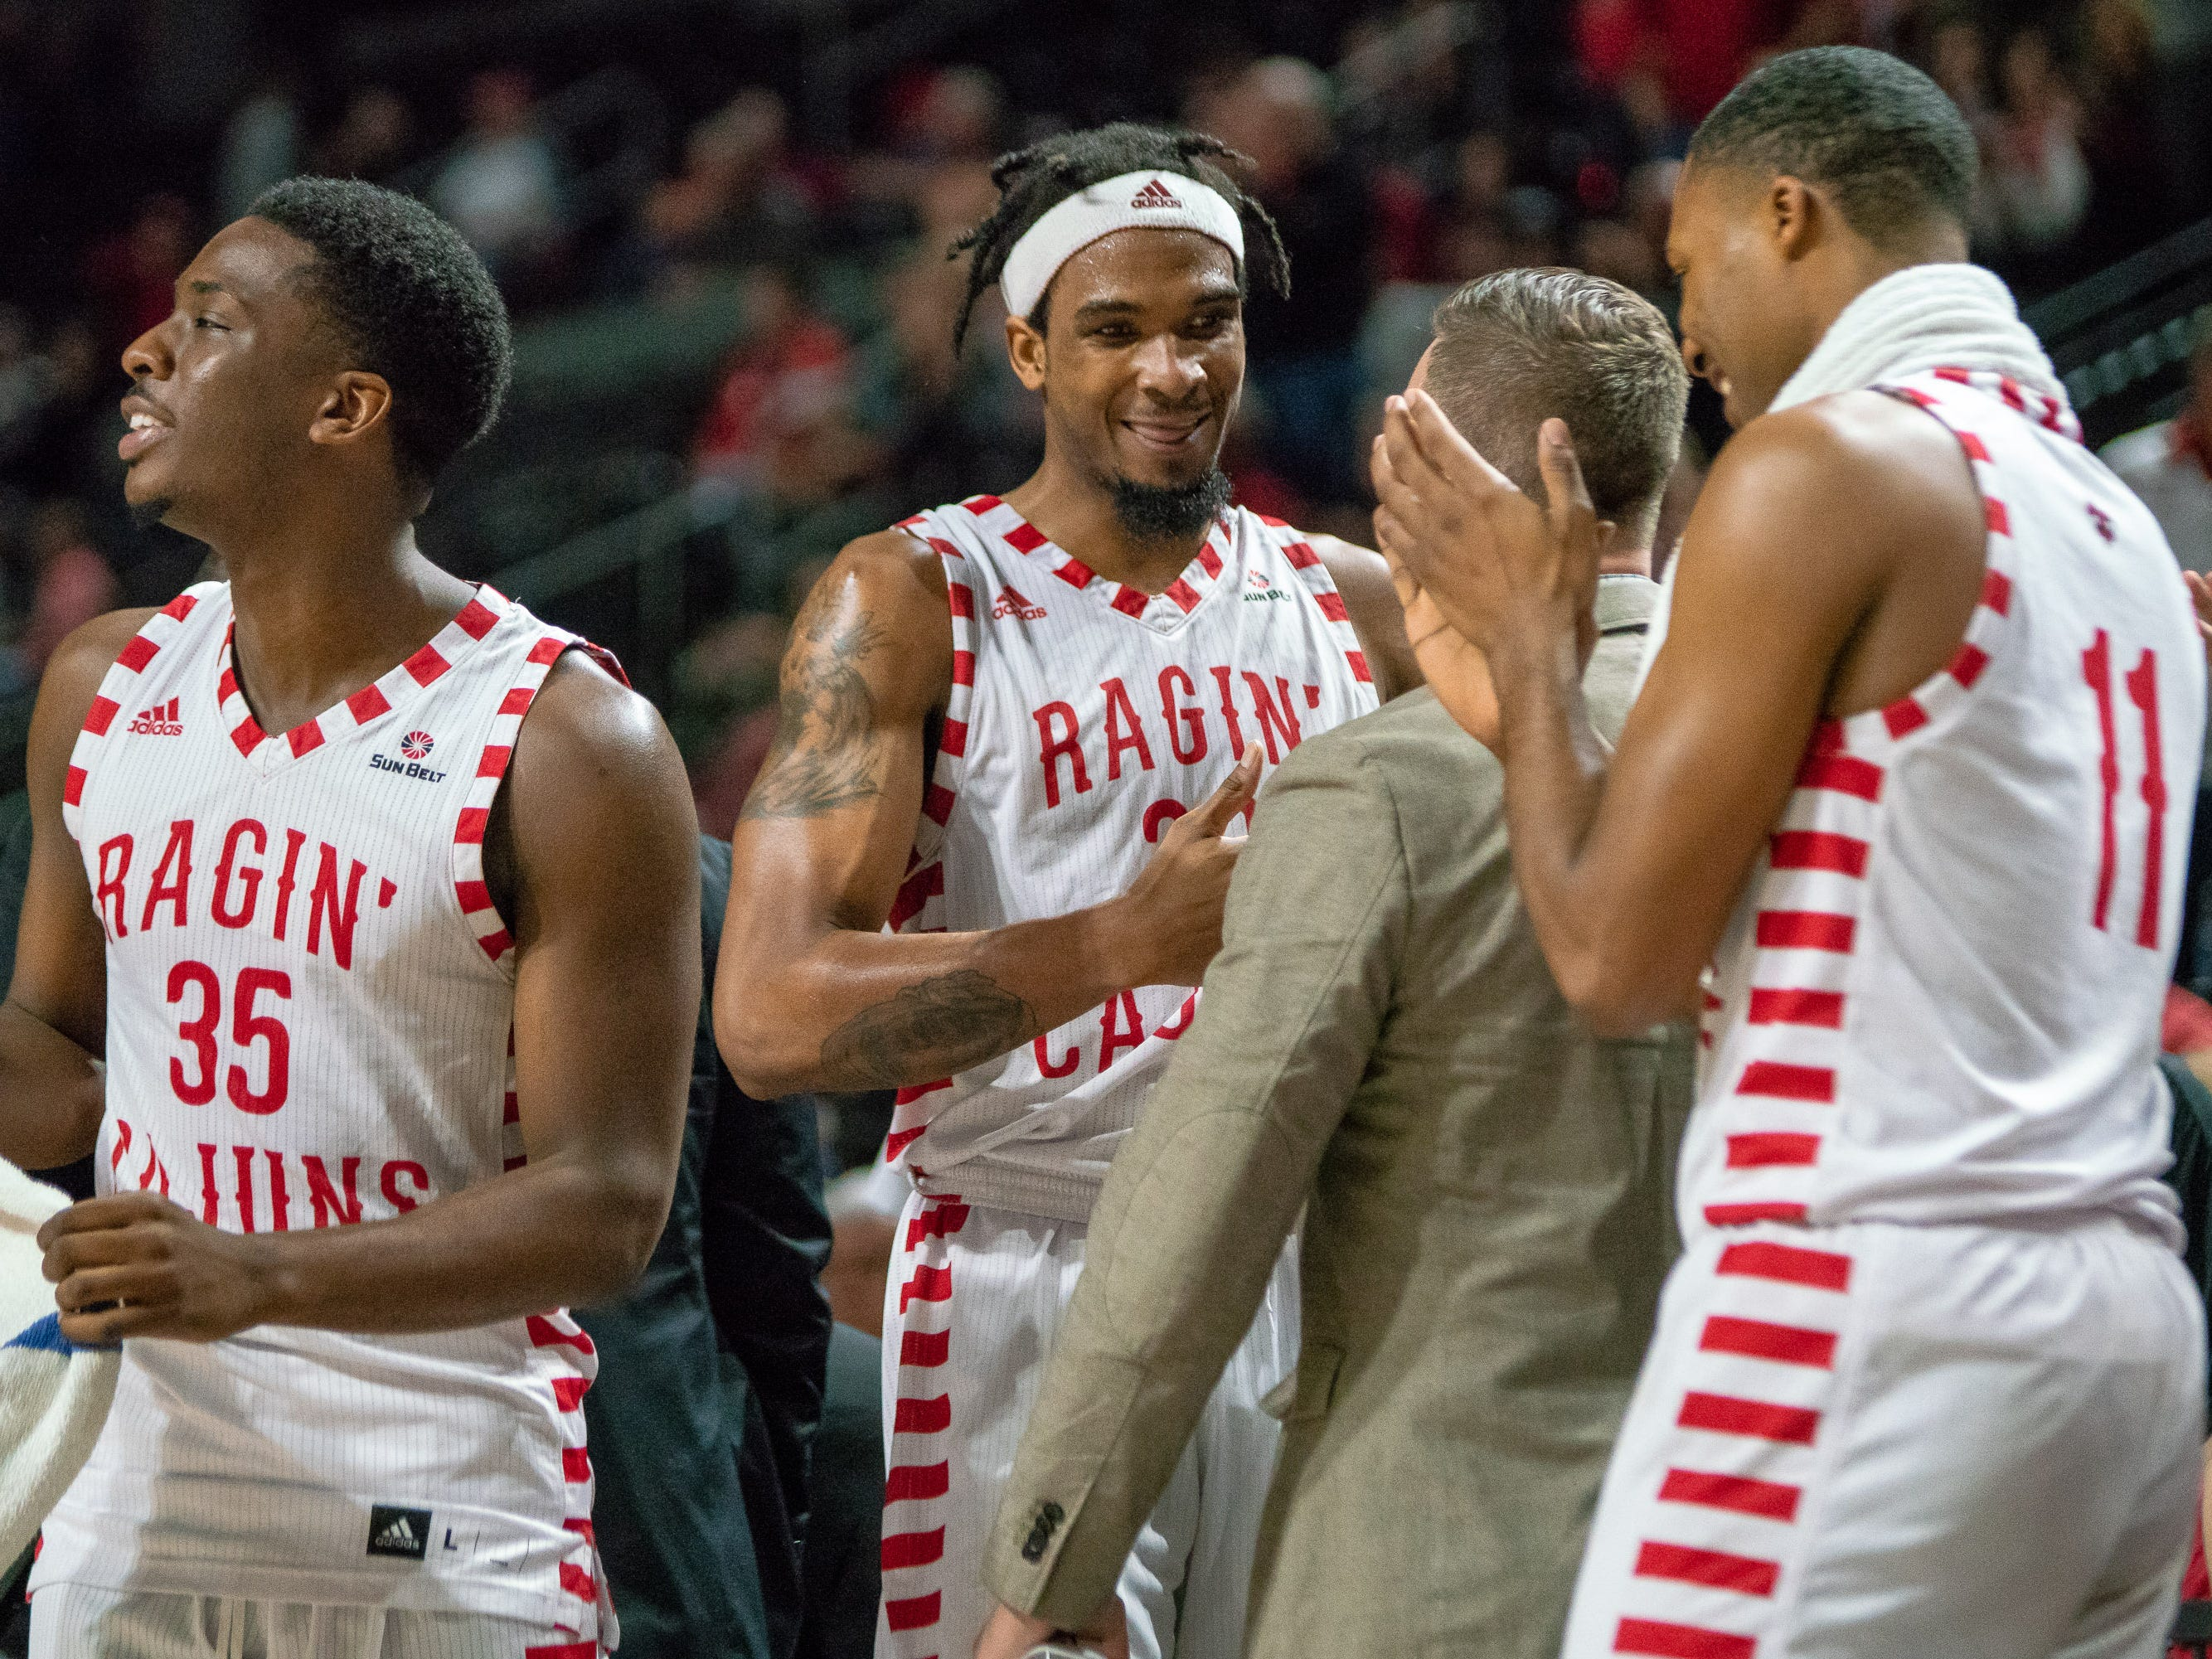 UL's Jakeenan Gant celebrates his 45 point career-high game with his team as the Ragin' Cajuns take on the Little Rock Trojans at the Cajundome on January 5, 2019.